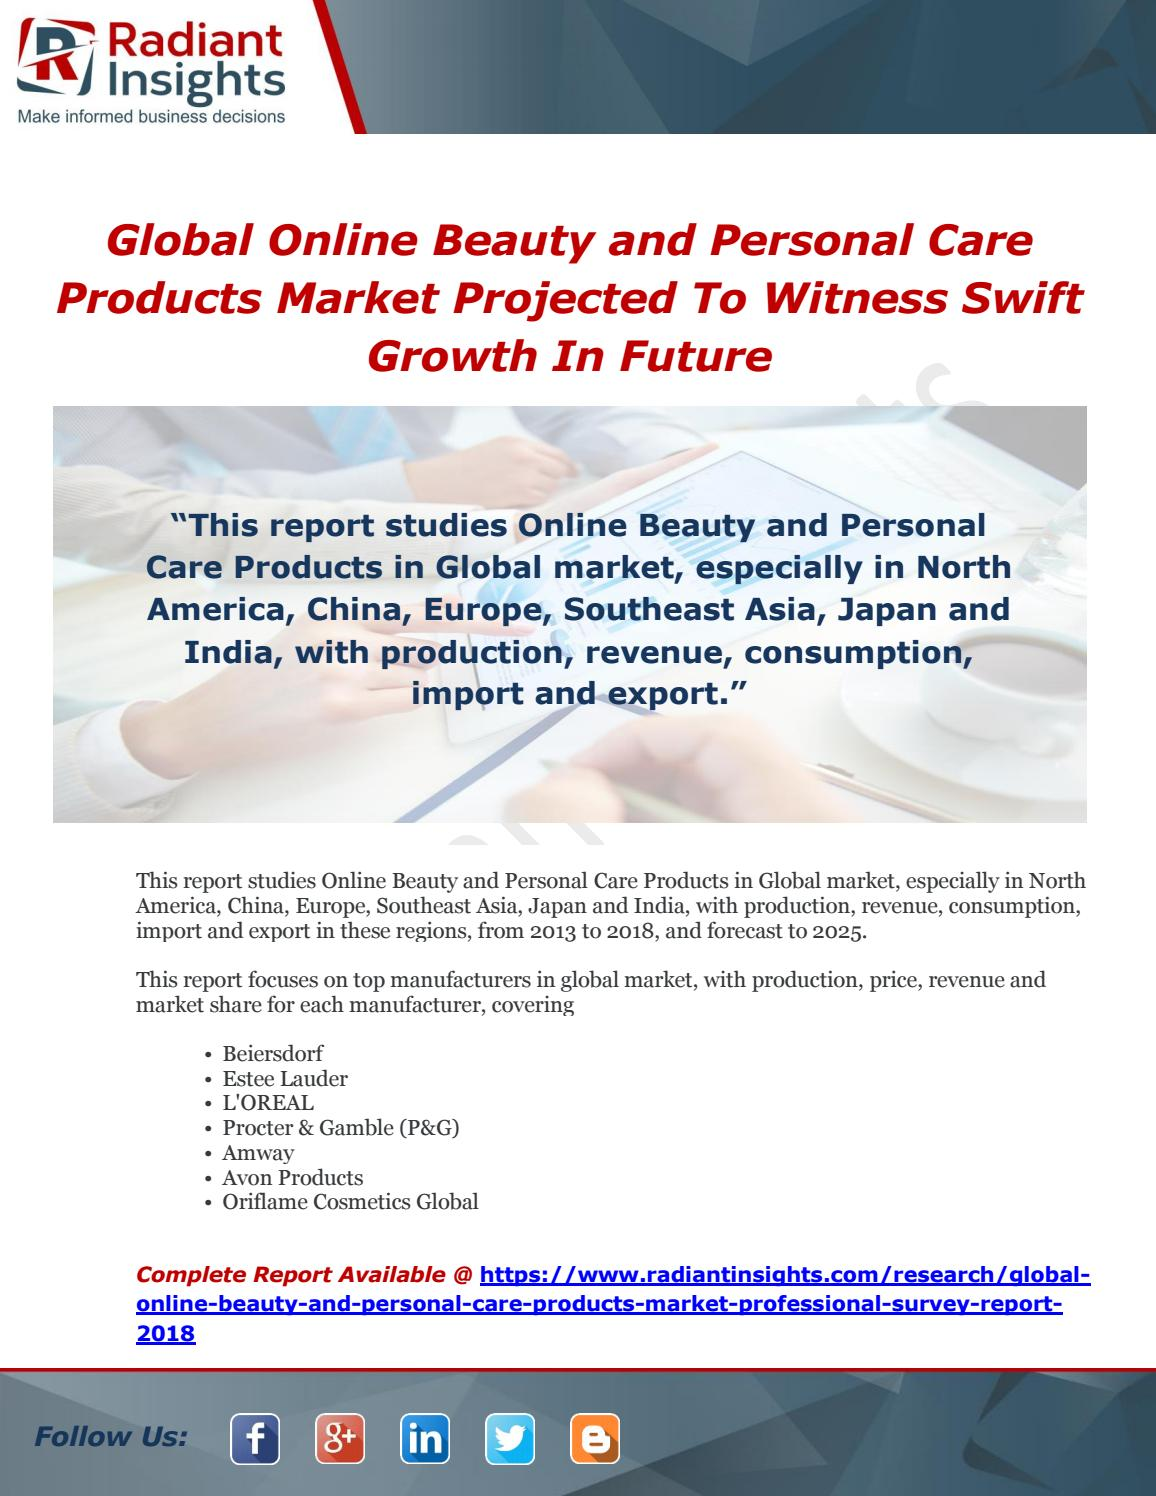 Global online beauty and personal care products market projected to